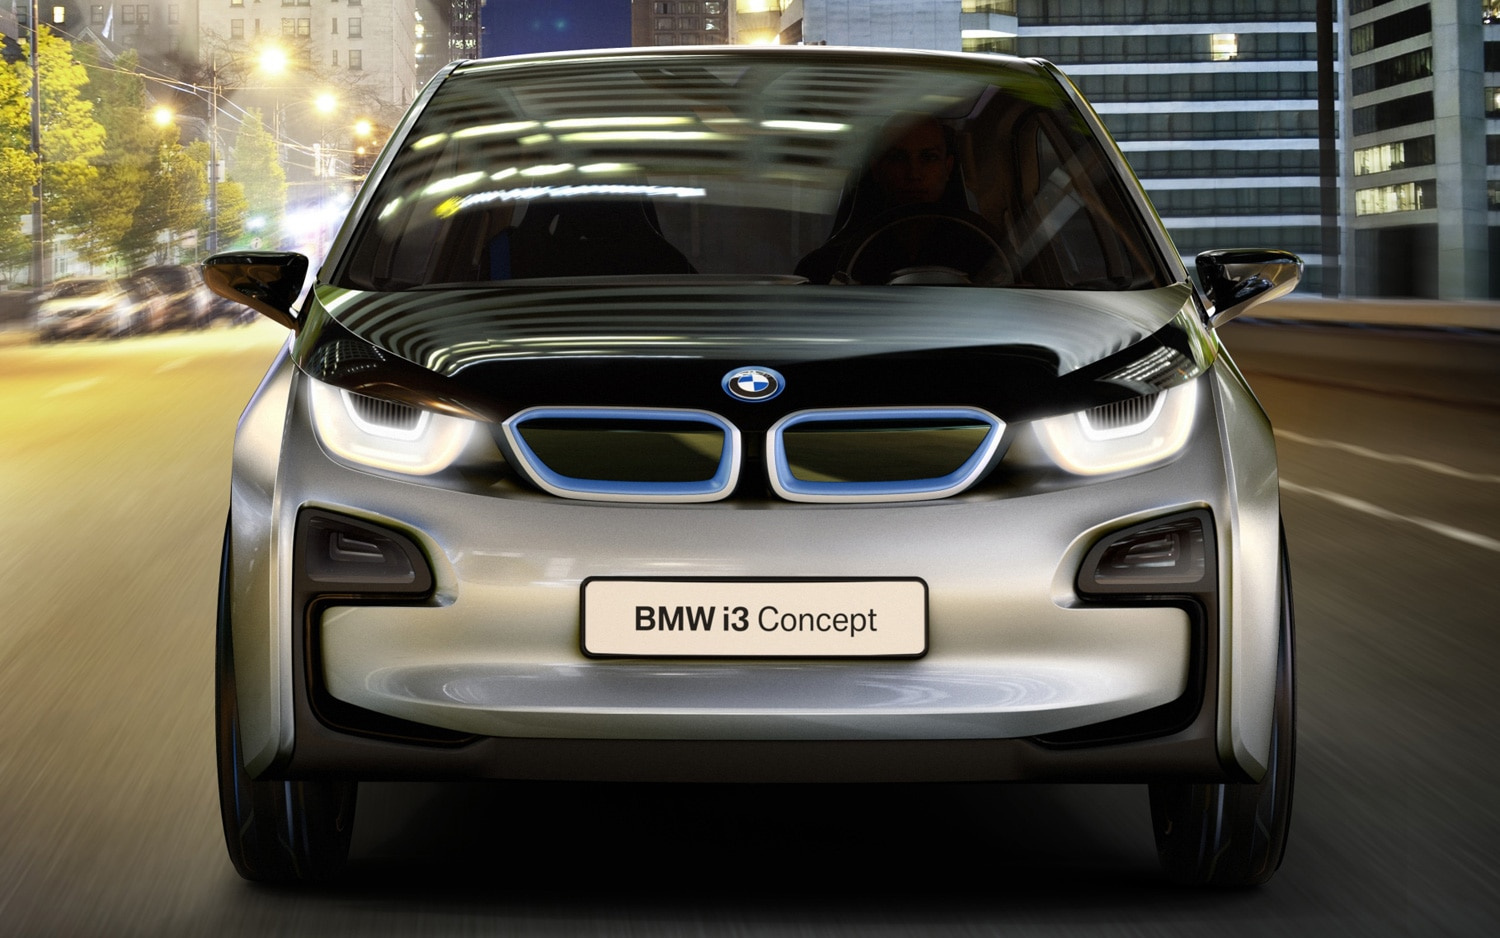 2011 BMW I3 Concept Front View1